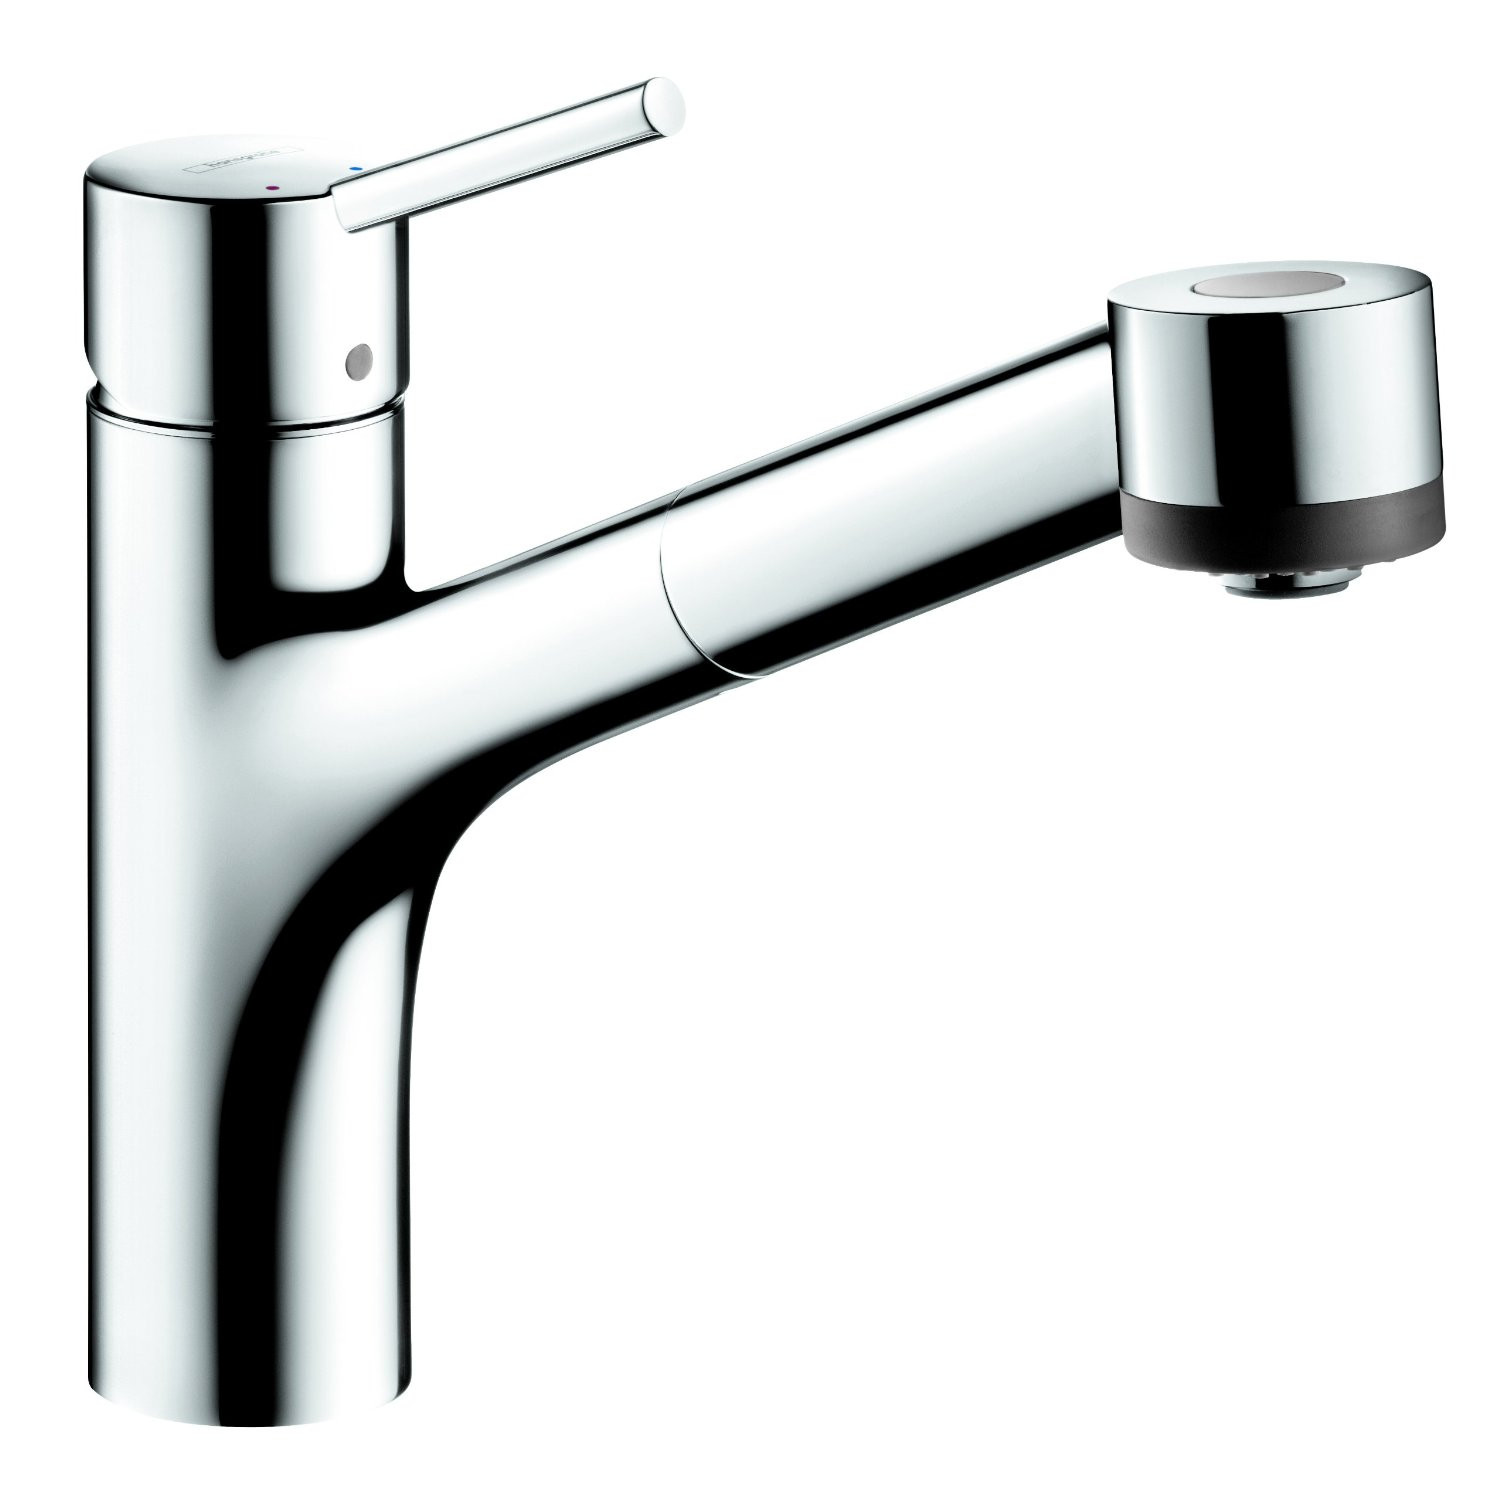 Hansgrohe 06462 Talis S Single Hole Kitchen LowFlow